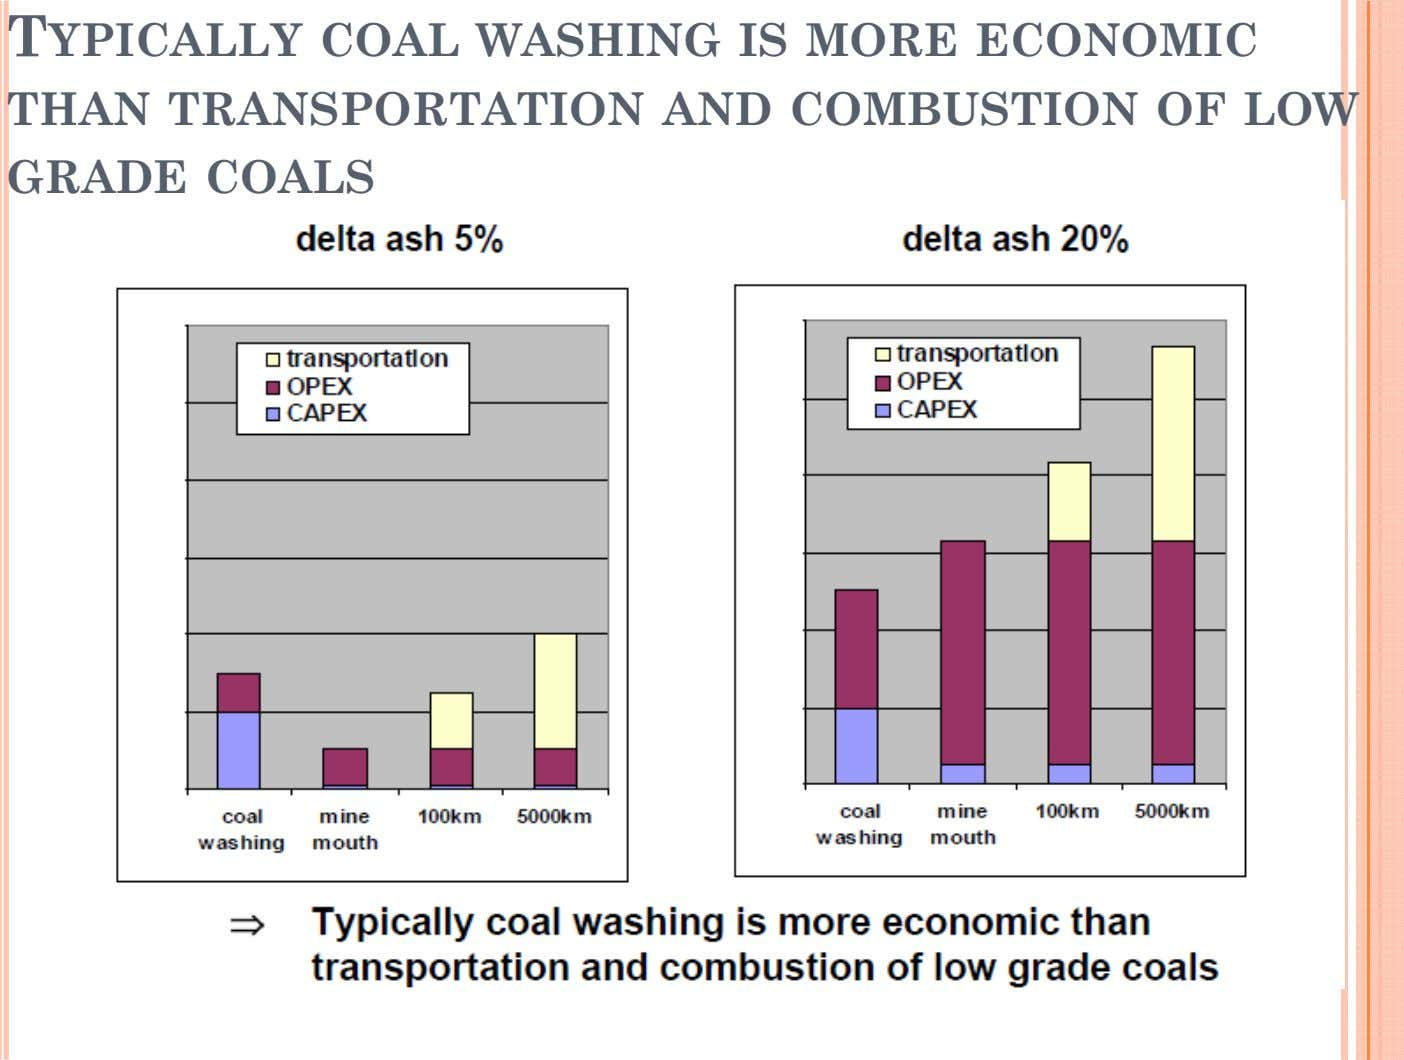 TYPICALLY COAL WASHING IS MORE ECONOMIC THAN TRANSPORTATION AND COMBUSTION OF LOW GRADE COALS